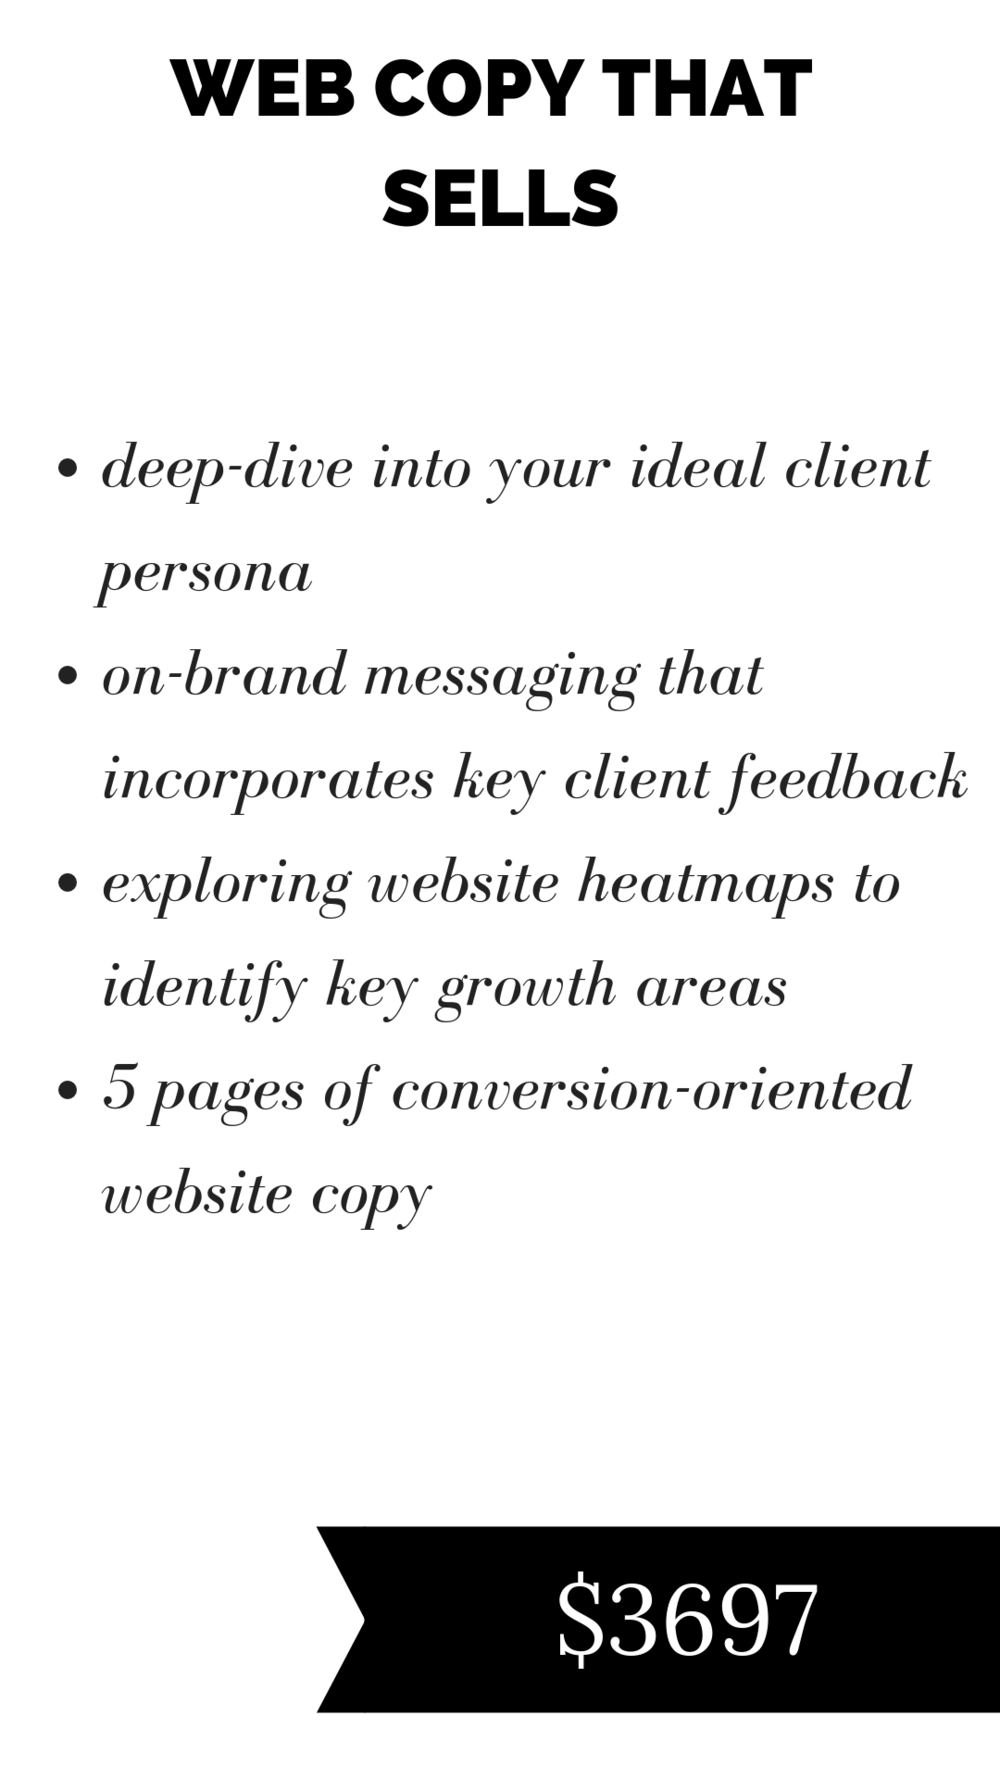 conversion website copy for service based businesses